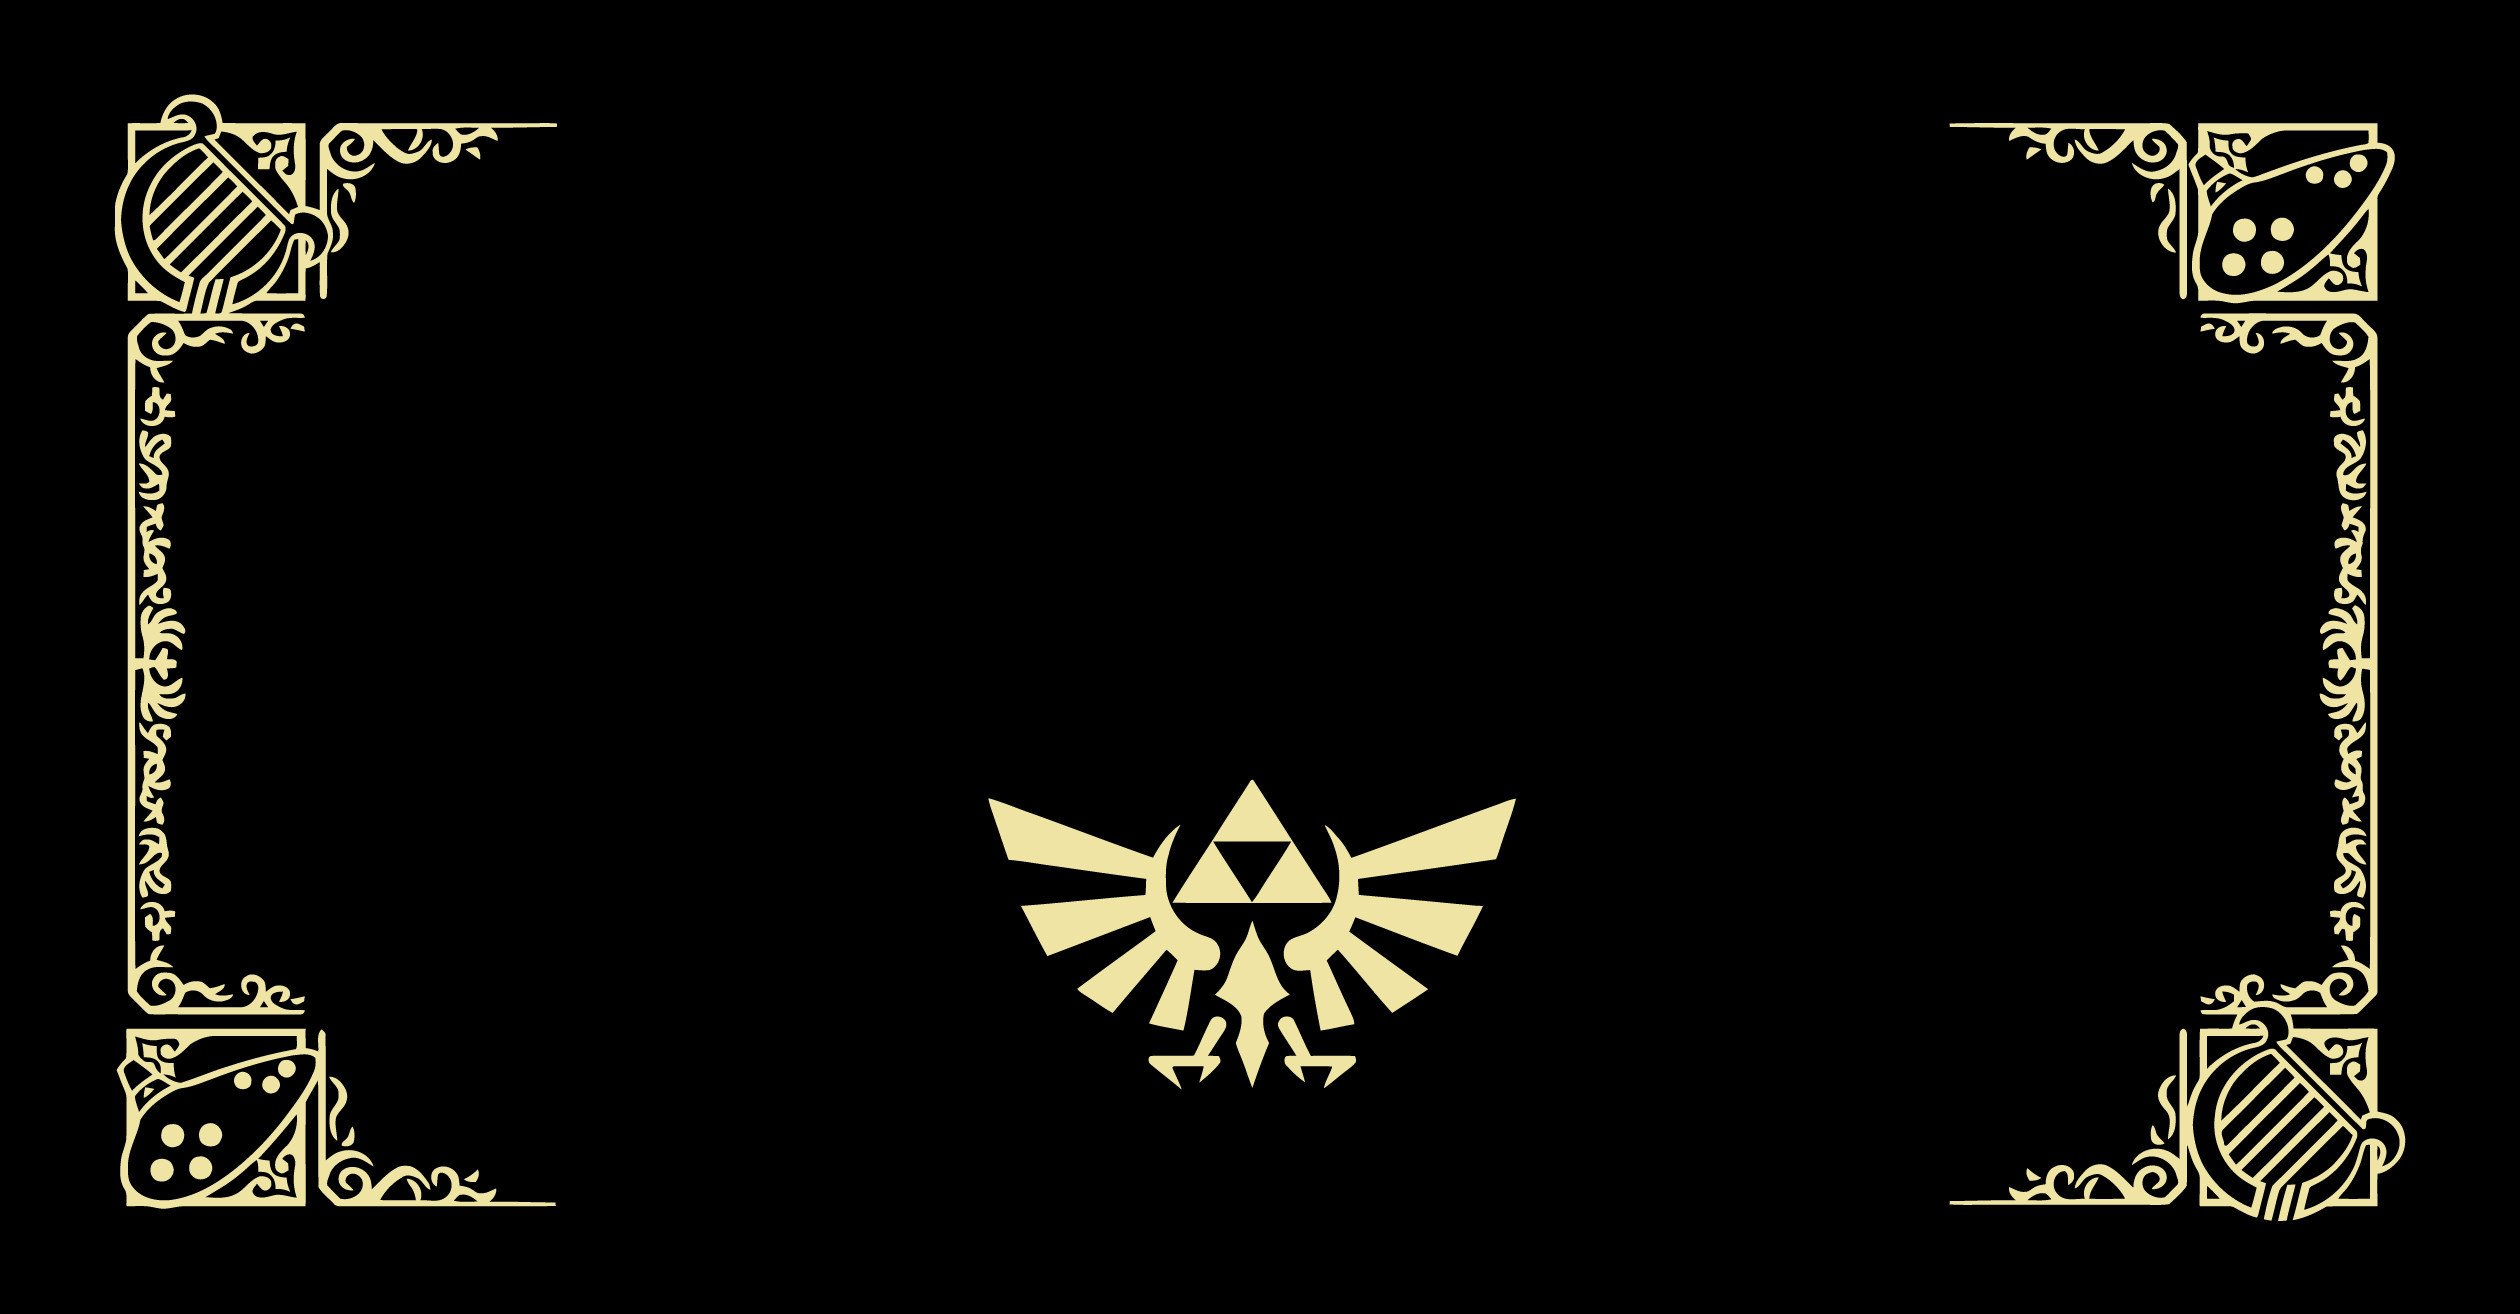 New 3ds Xl Skin Template Has Anyone Recreated the Zelda 25th Anniversary 3ds On the